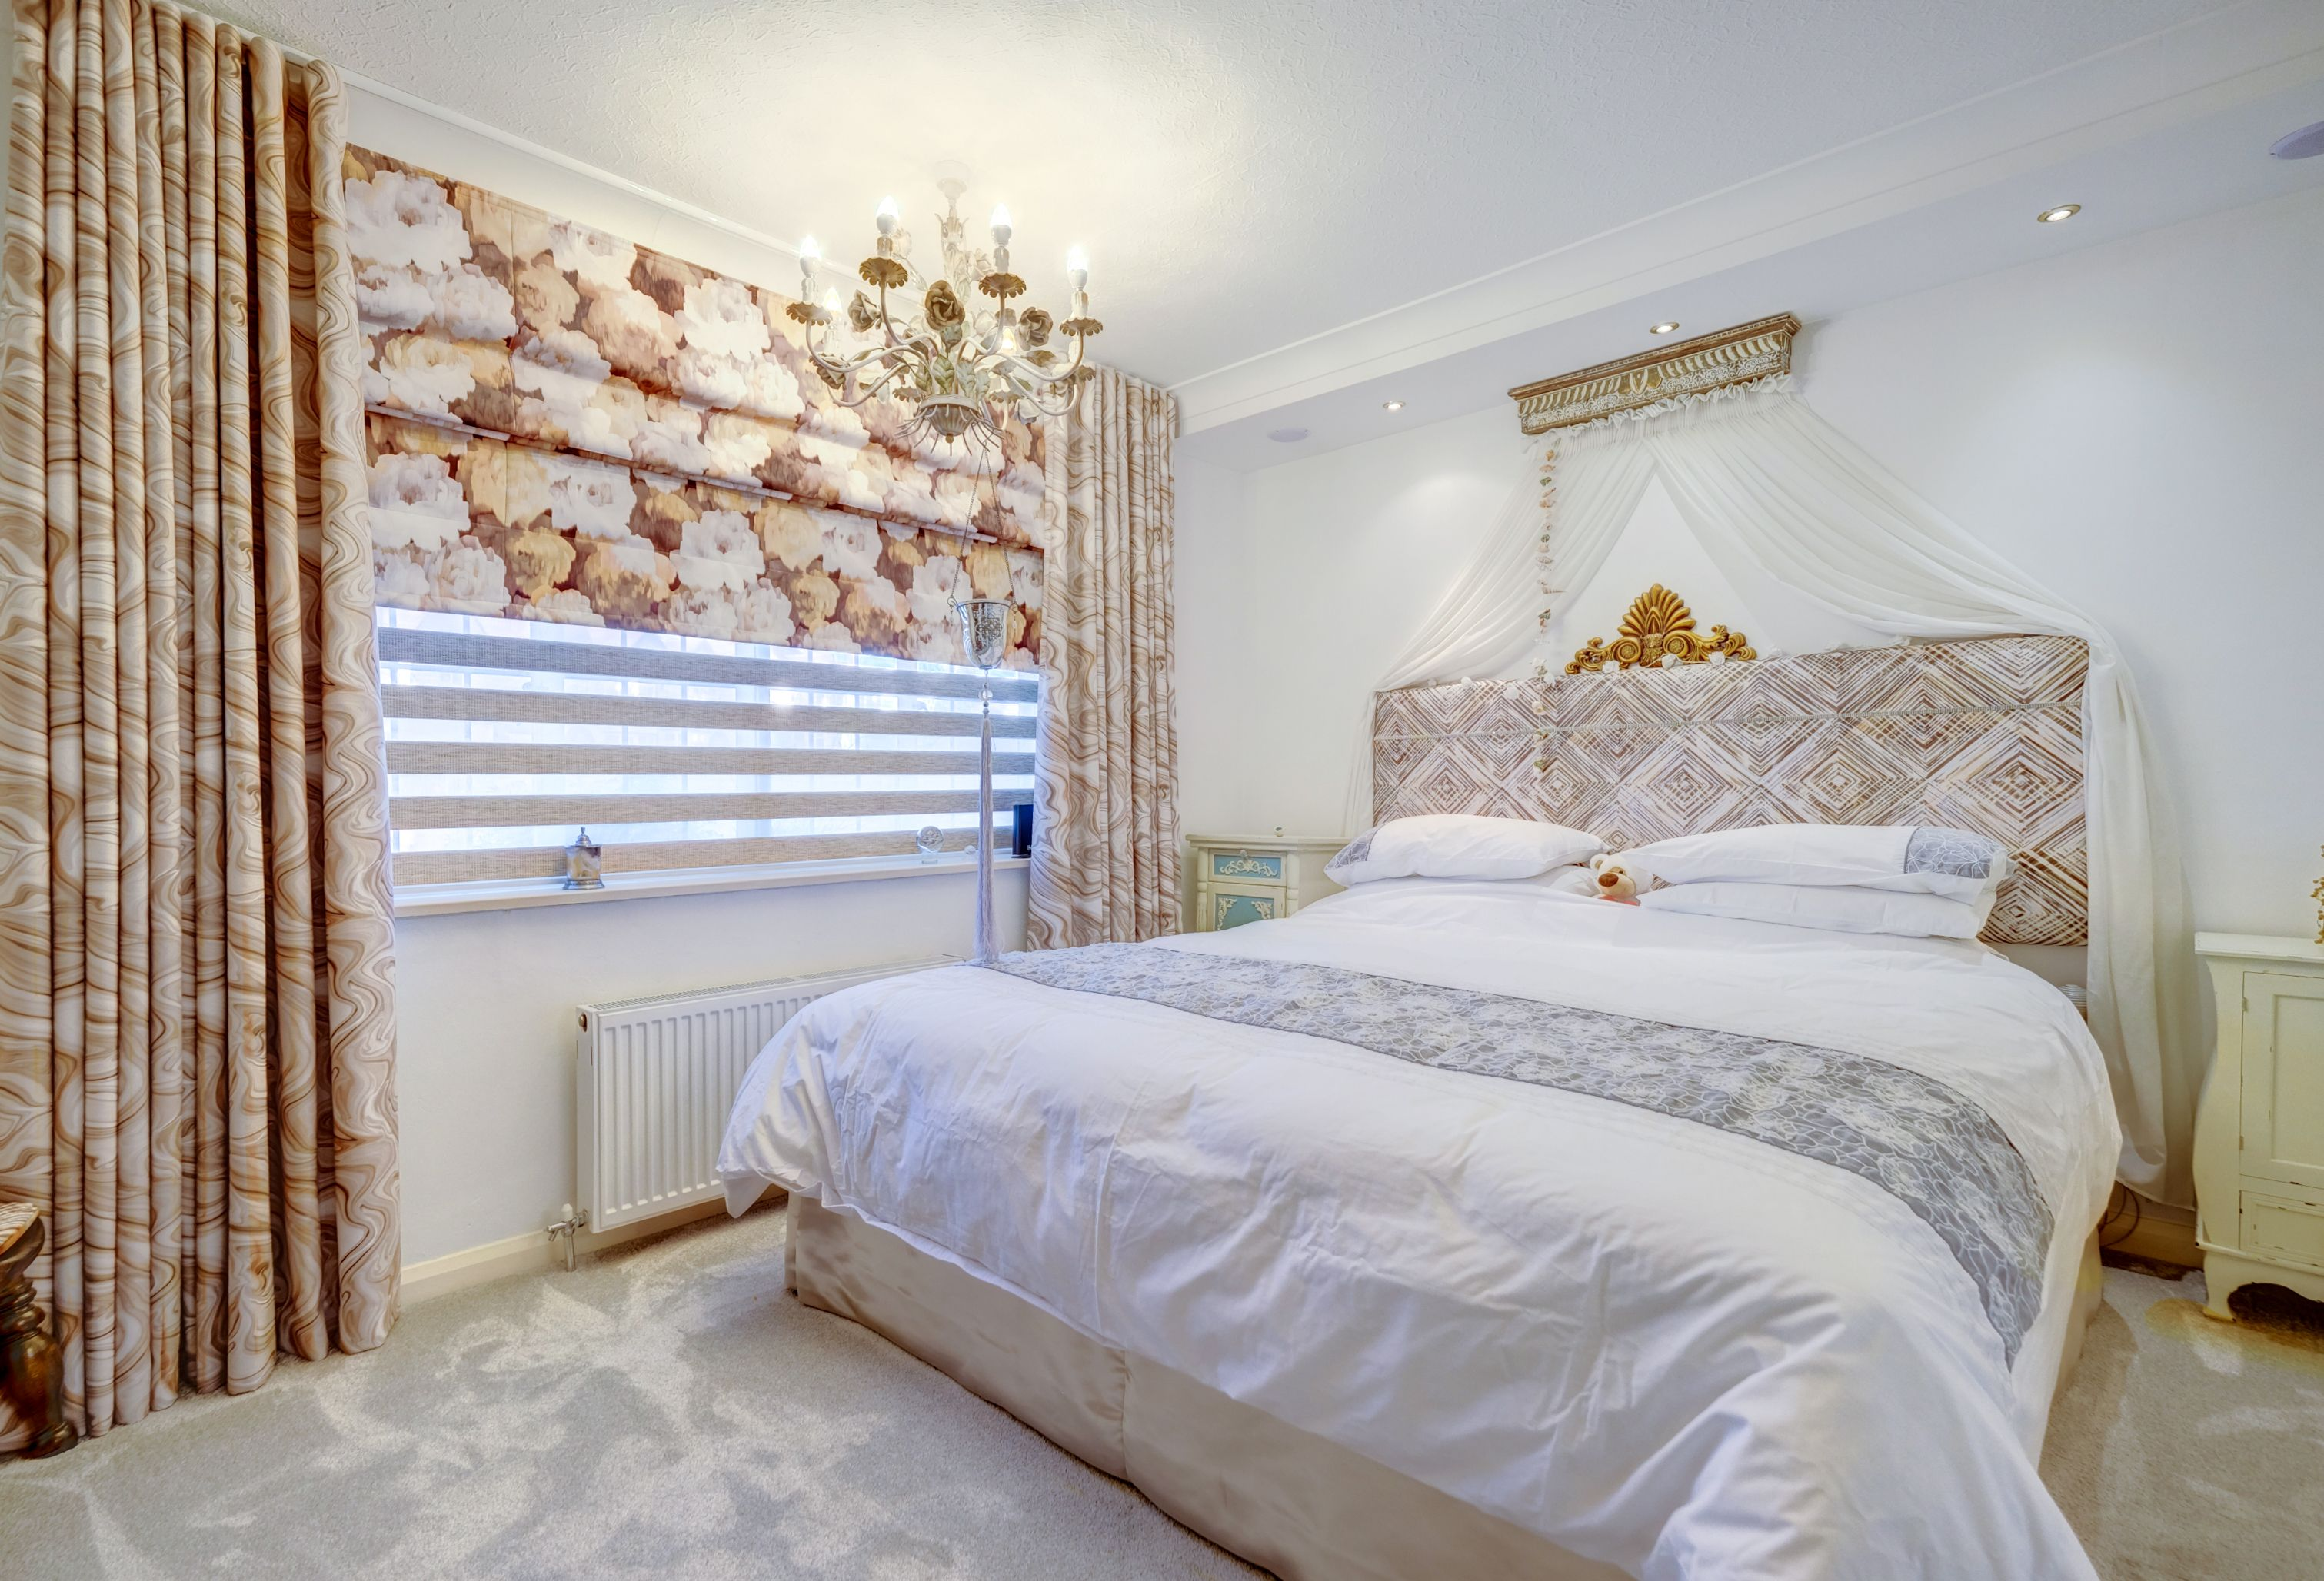 4 bed detached house for sale in Stanley Road, Hinckley, LE10, Hinckley  - Property Image 11